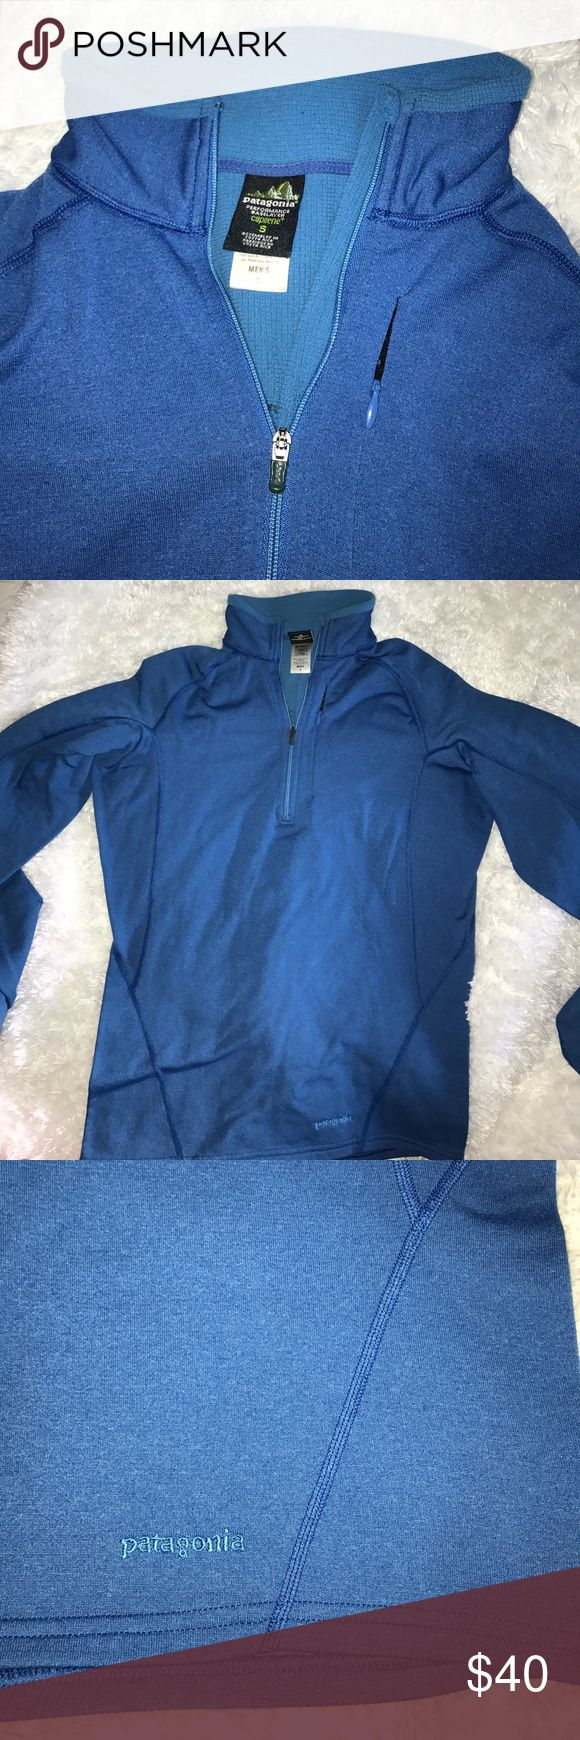 Patagonia Fleece Pullover Thermo Patagonia Fleece Pull Over . In Like new condition absolutely no defects . Light and stretchy material men's size small. Patagonia Sweaters Turtleneck